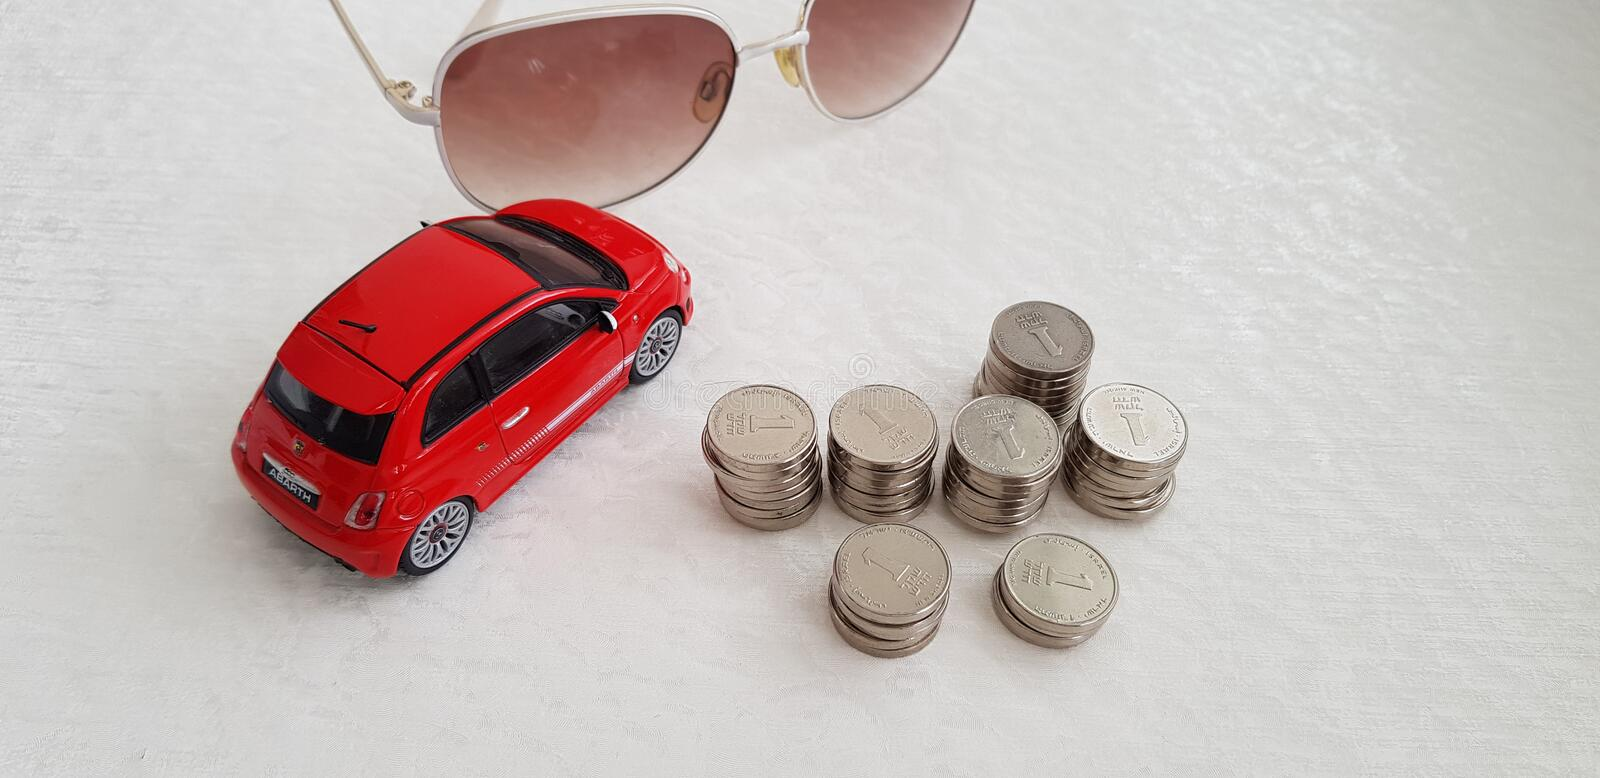 Ed fiat 500 abarth toy on white table near sunglasses and pile of Israeli shekel coins royalty free stock image